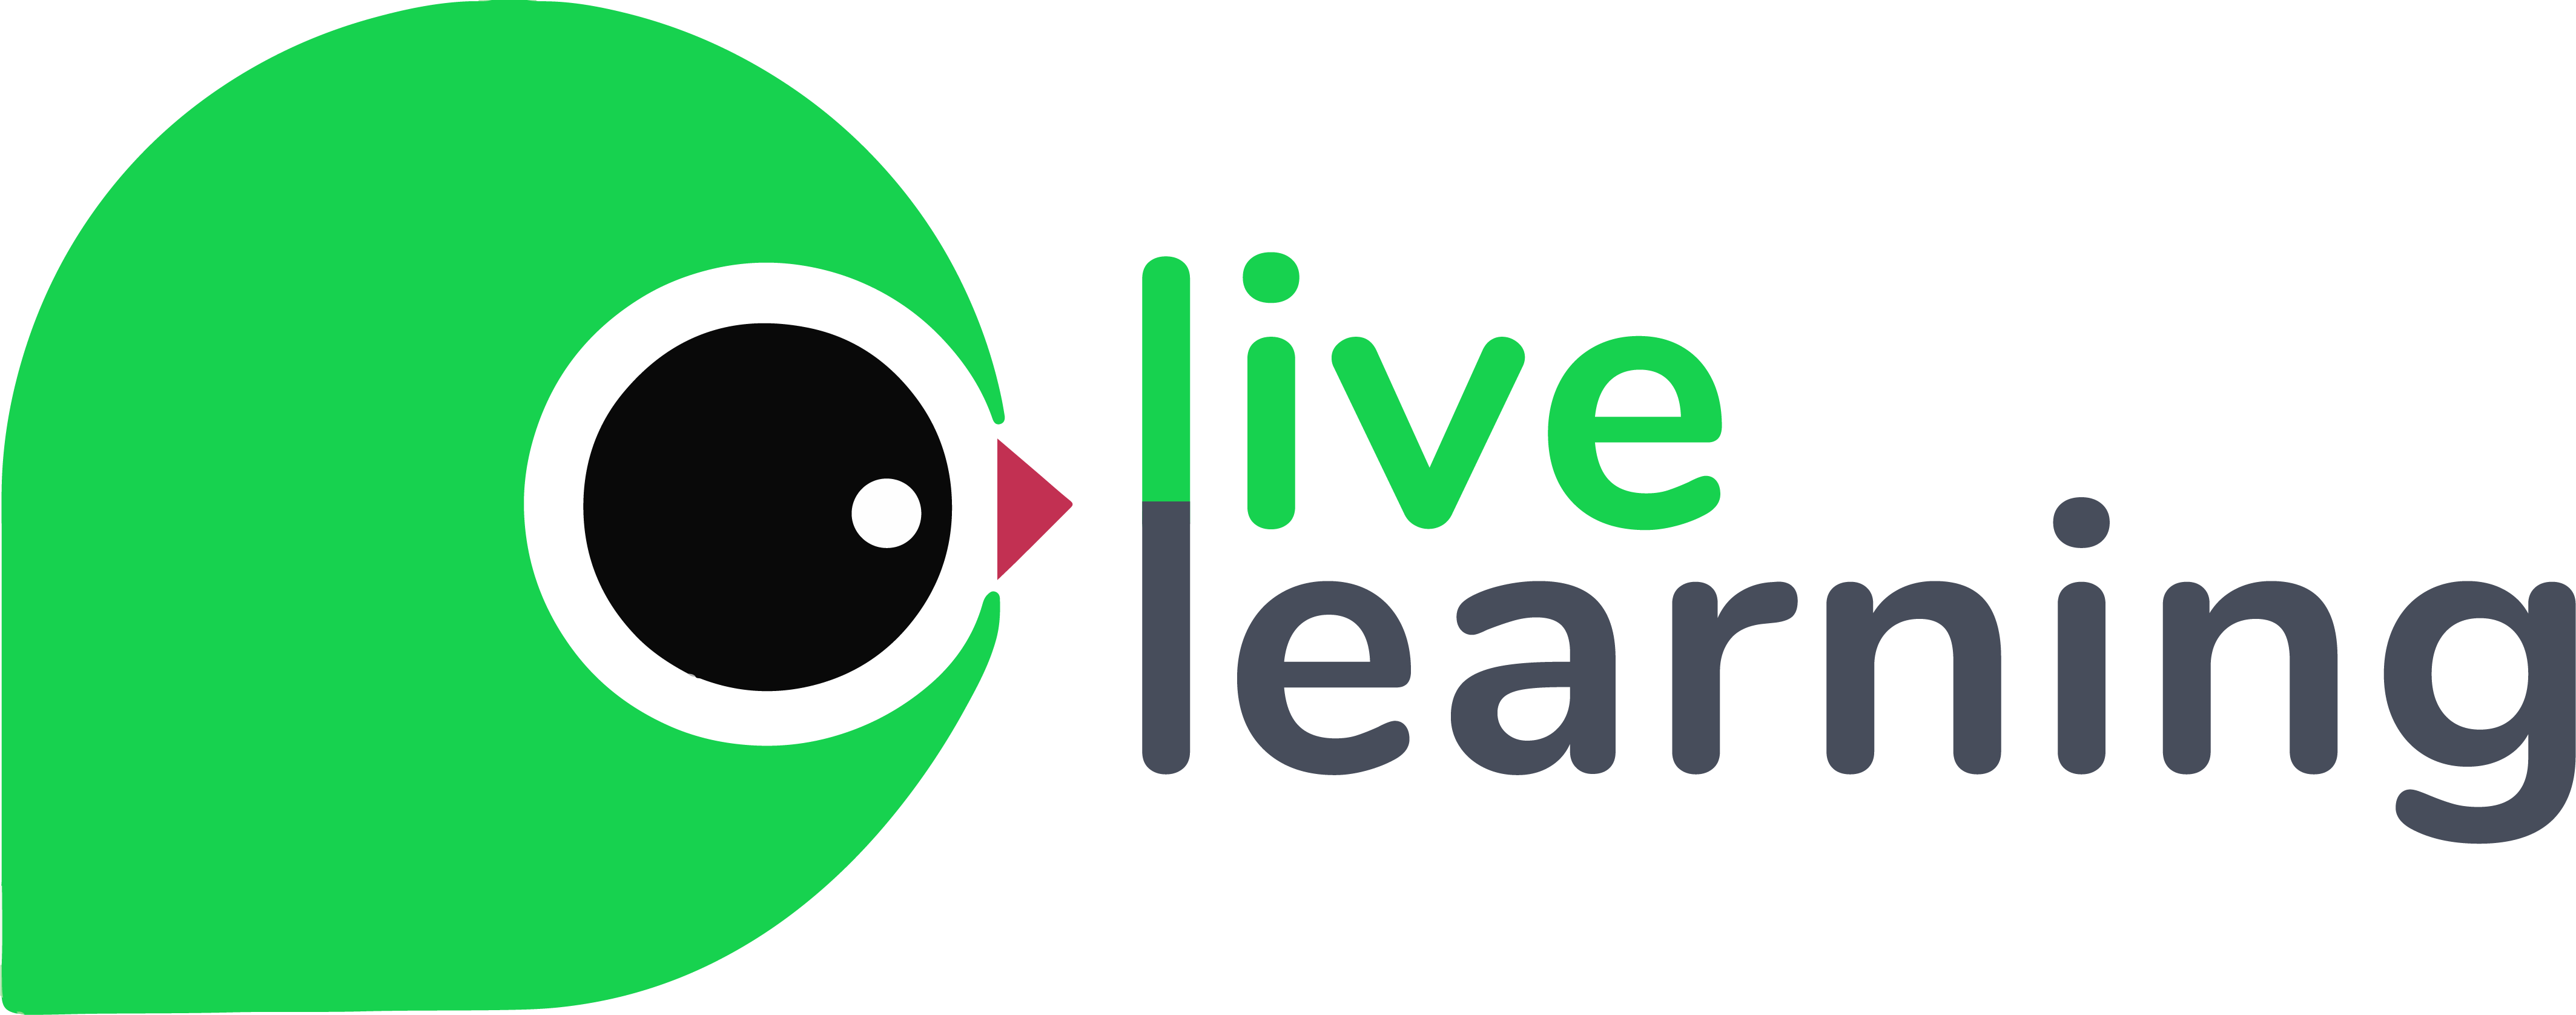 Live Learning Logo Text